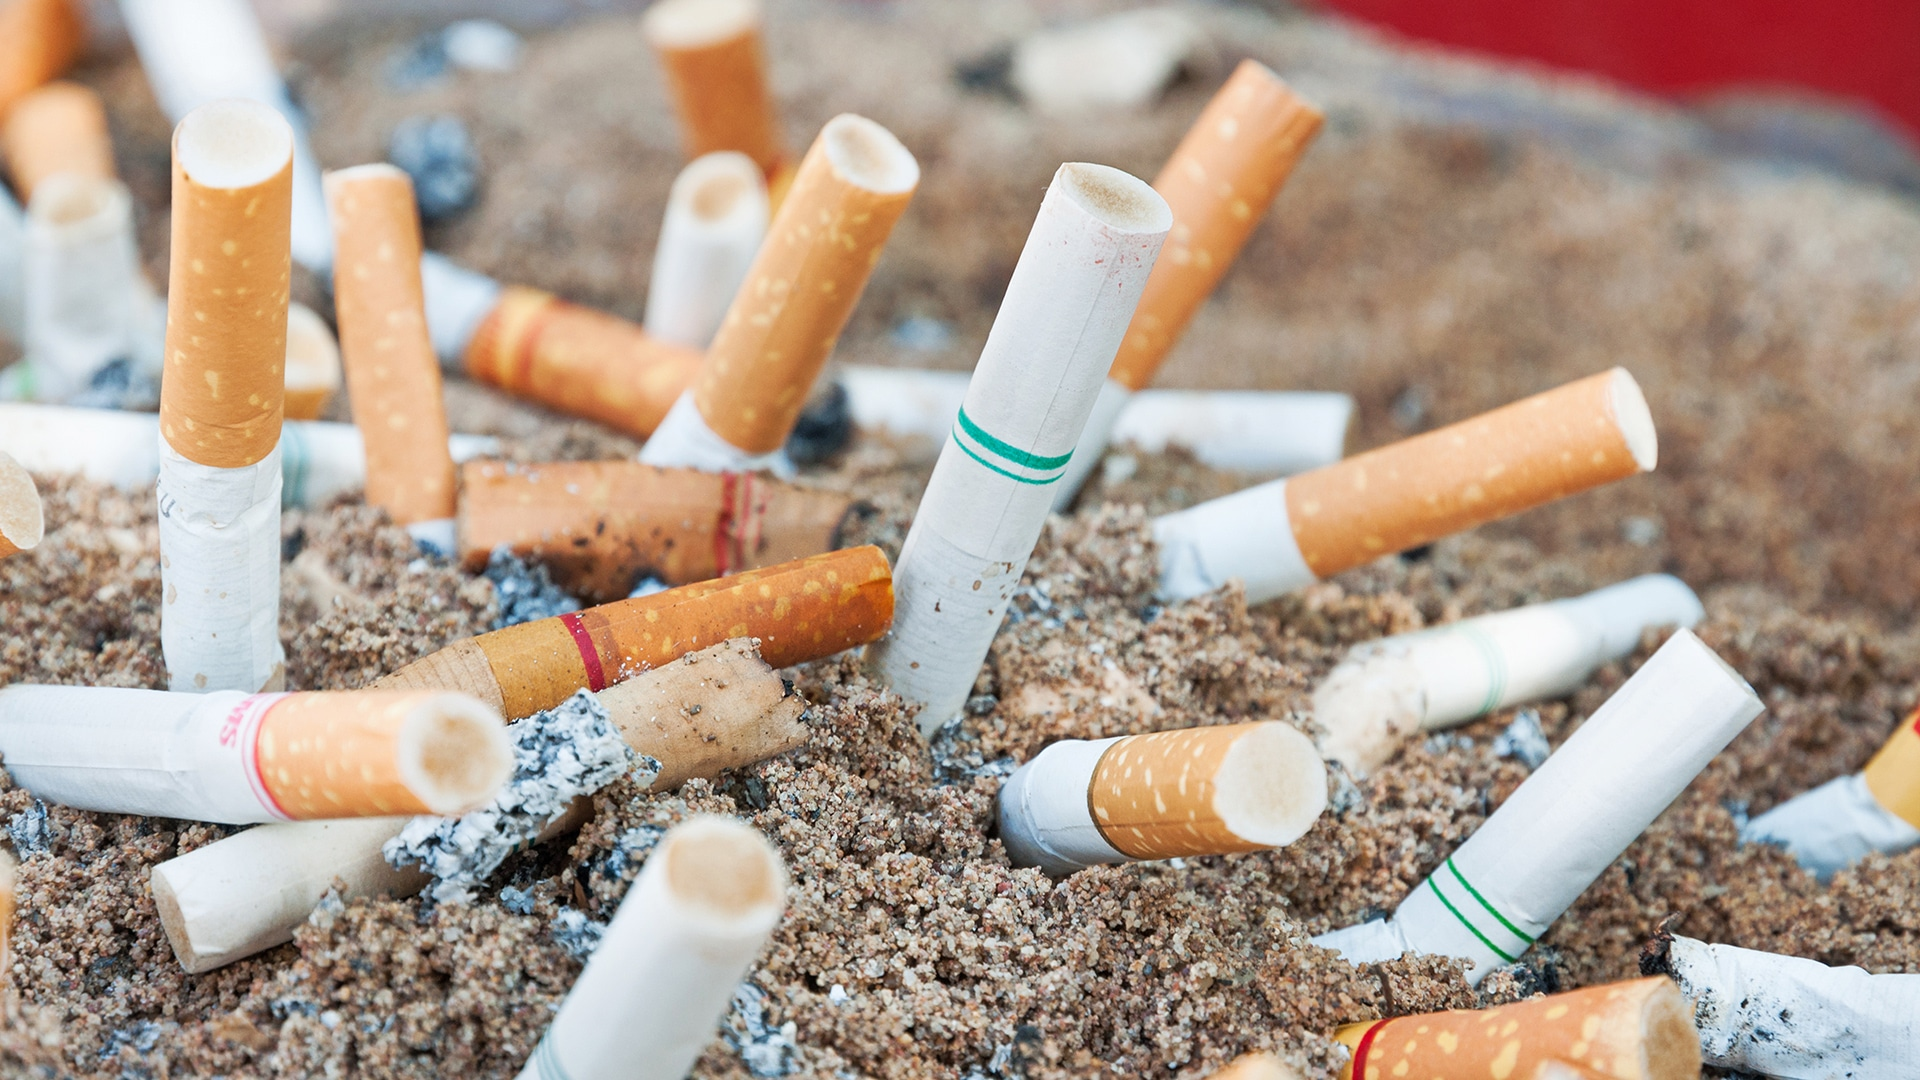 Additives in Tobacco And Their Effects On Health